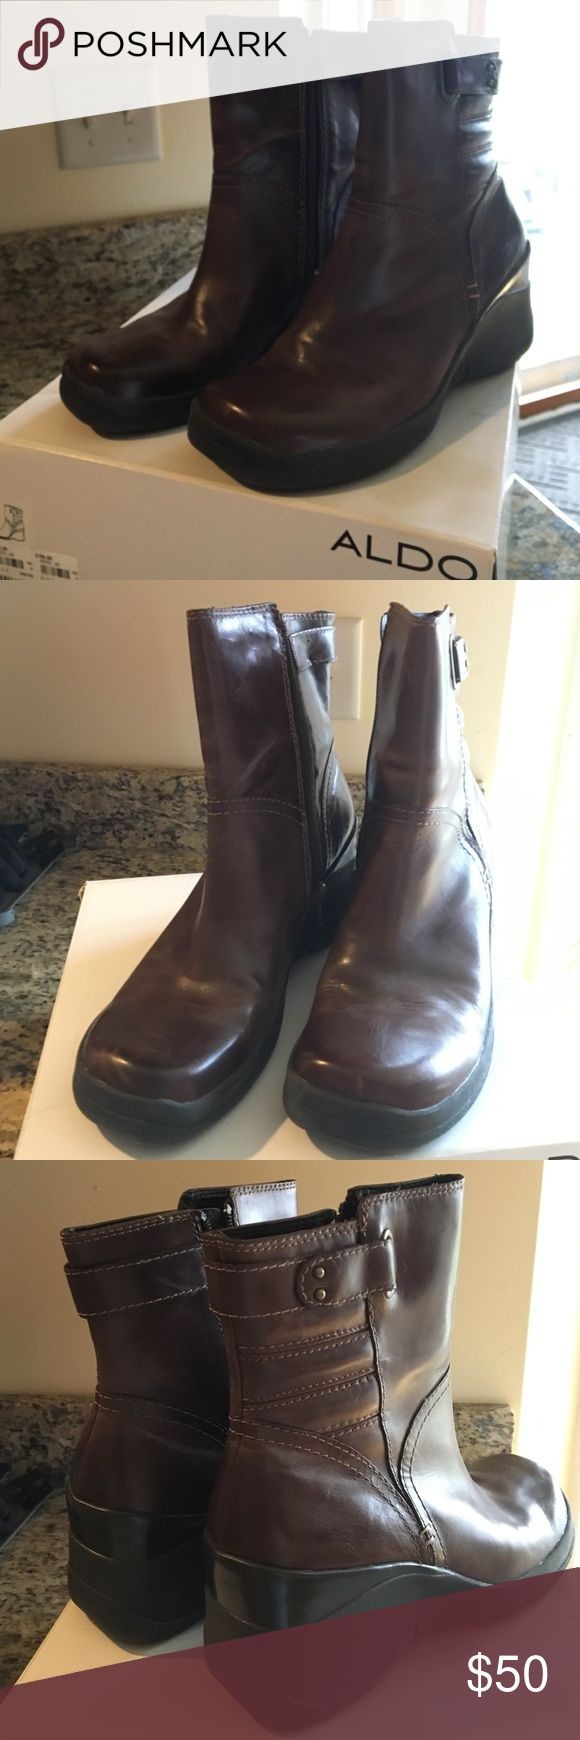 Aldo ladies Boots Ladies Leather wedge boots. Maybe used twice. Great condition. Zipper closure Aldo Shoes Ankle Boots & Booties